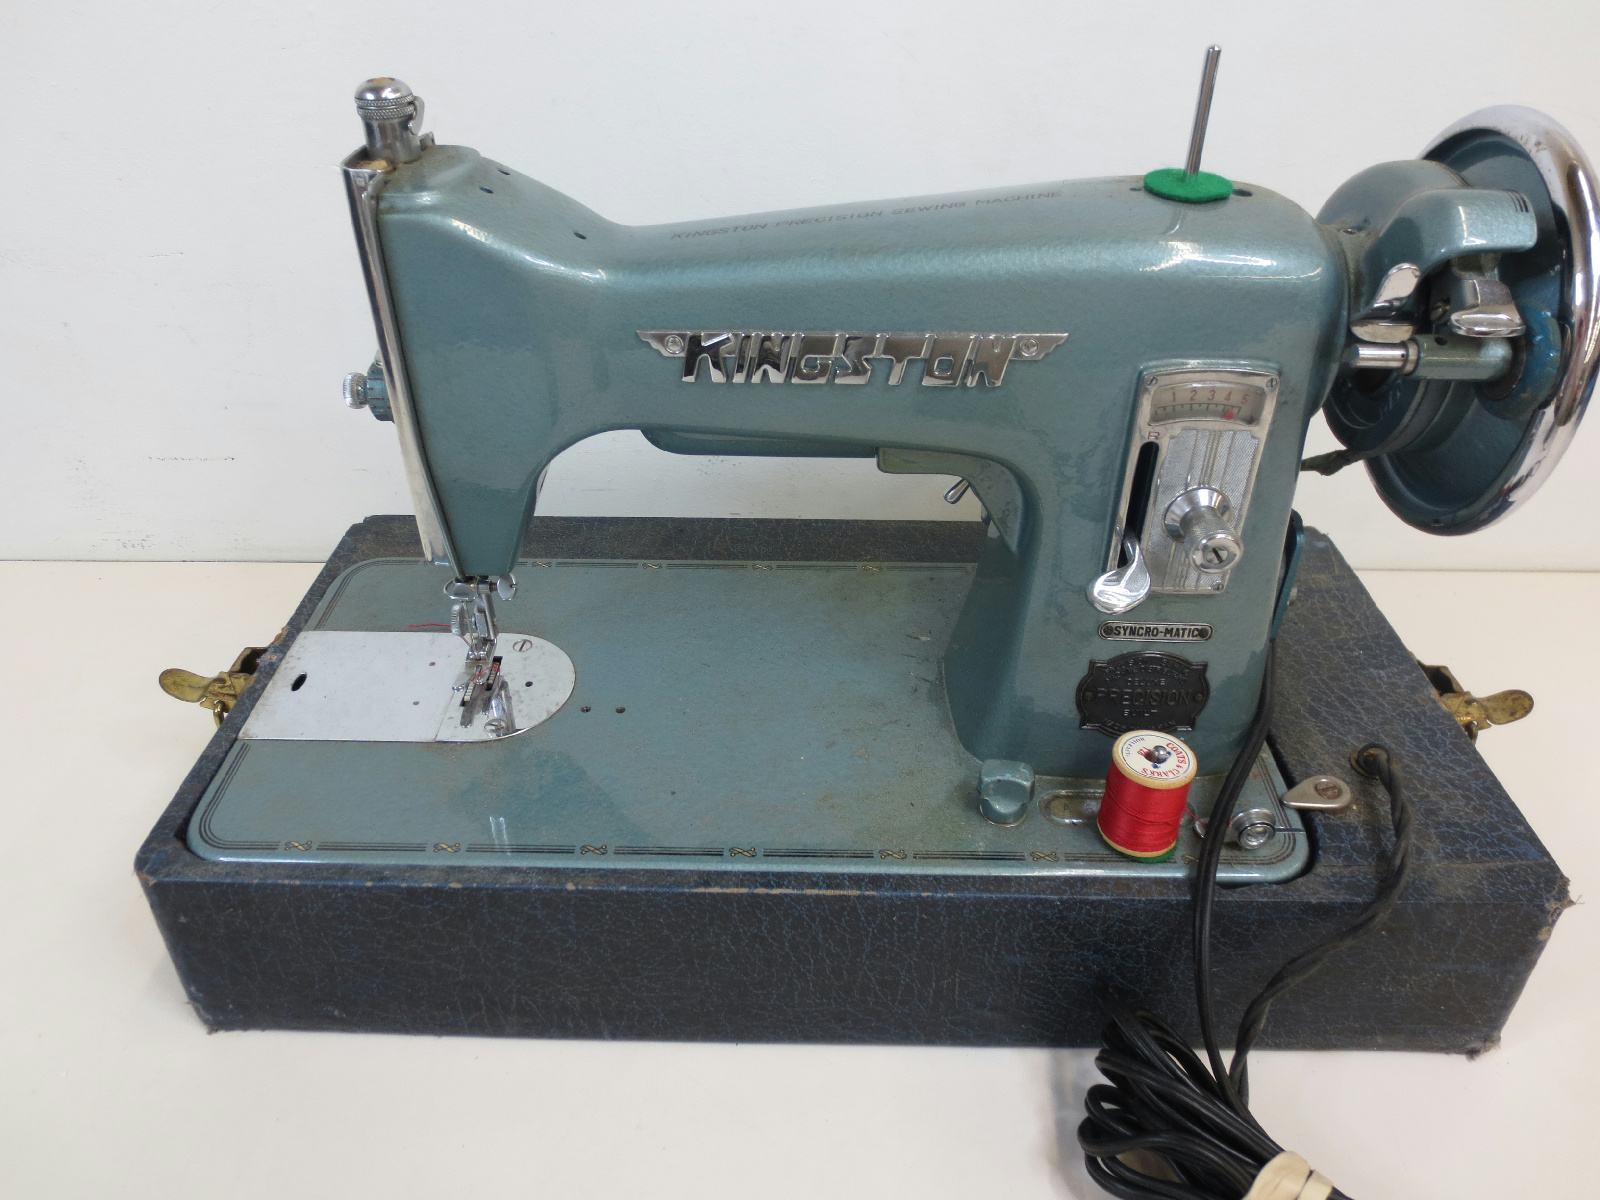 deluxe precision sewing machine